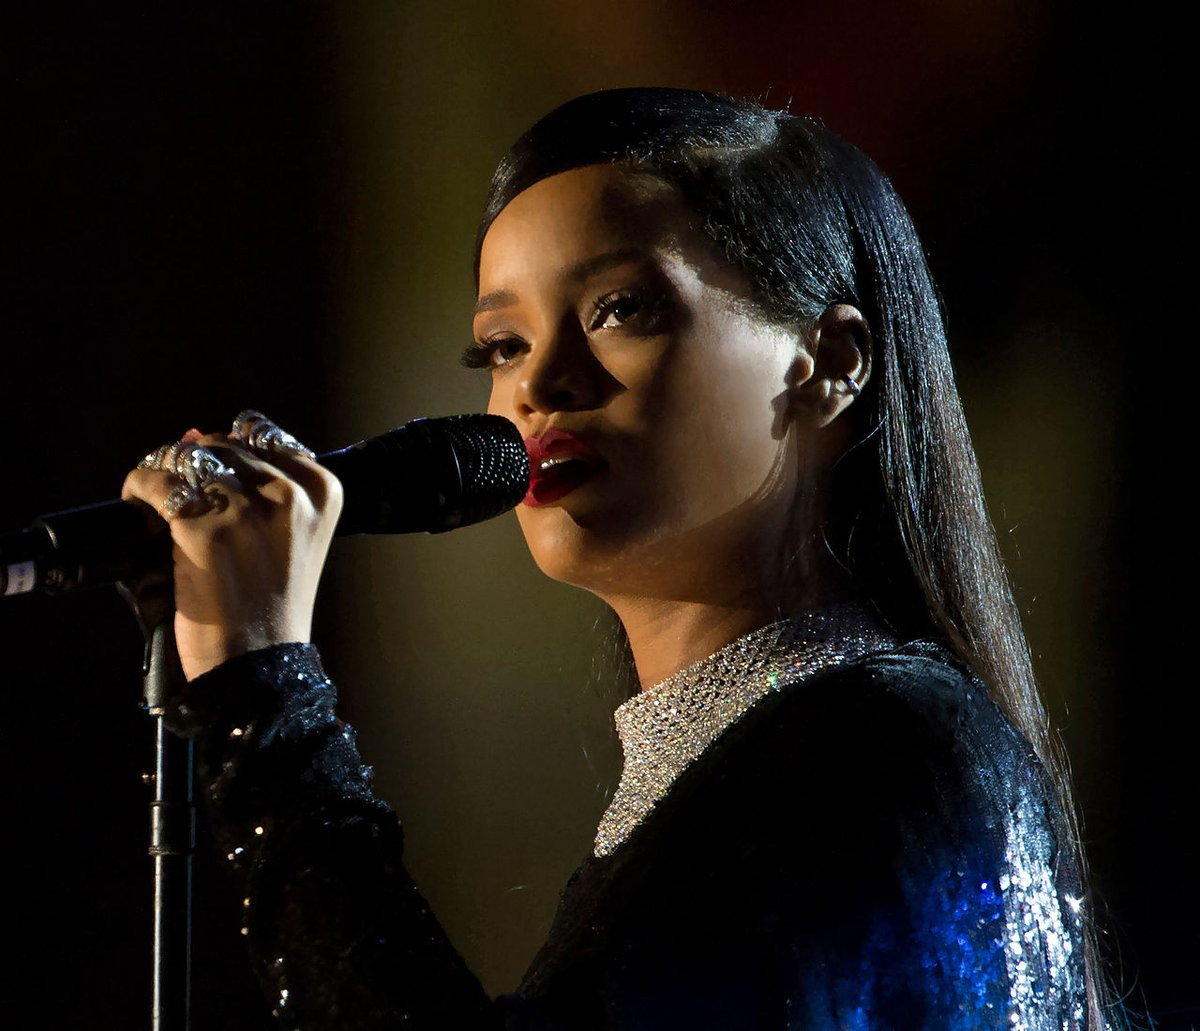 'Everyone's cool with a young black woman singing, dancing, partying. But when it comes time to negotiate, to broker a deal, she is suddenly made aware of her blackness.' - Rihanna. https://t.co/8JaapLyioj